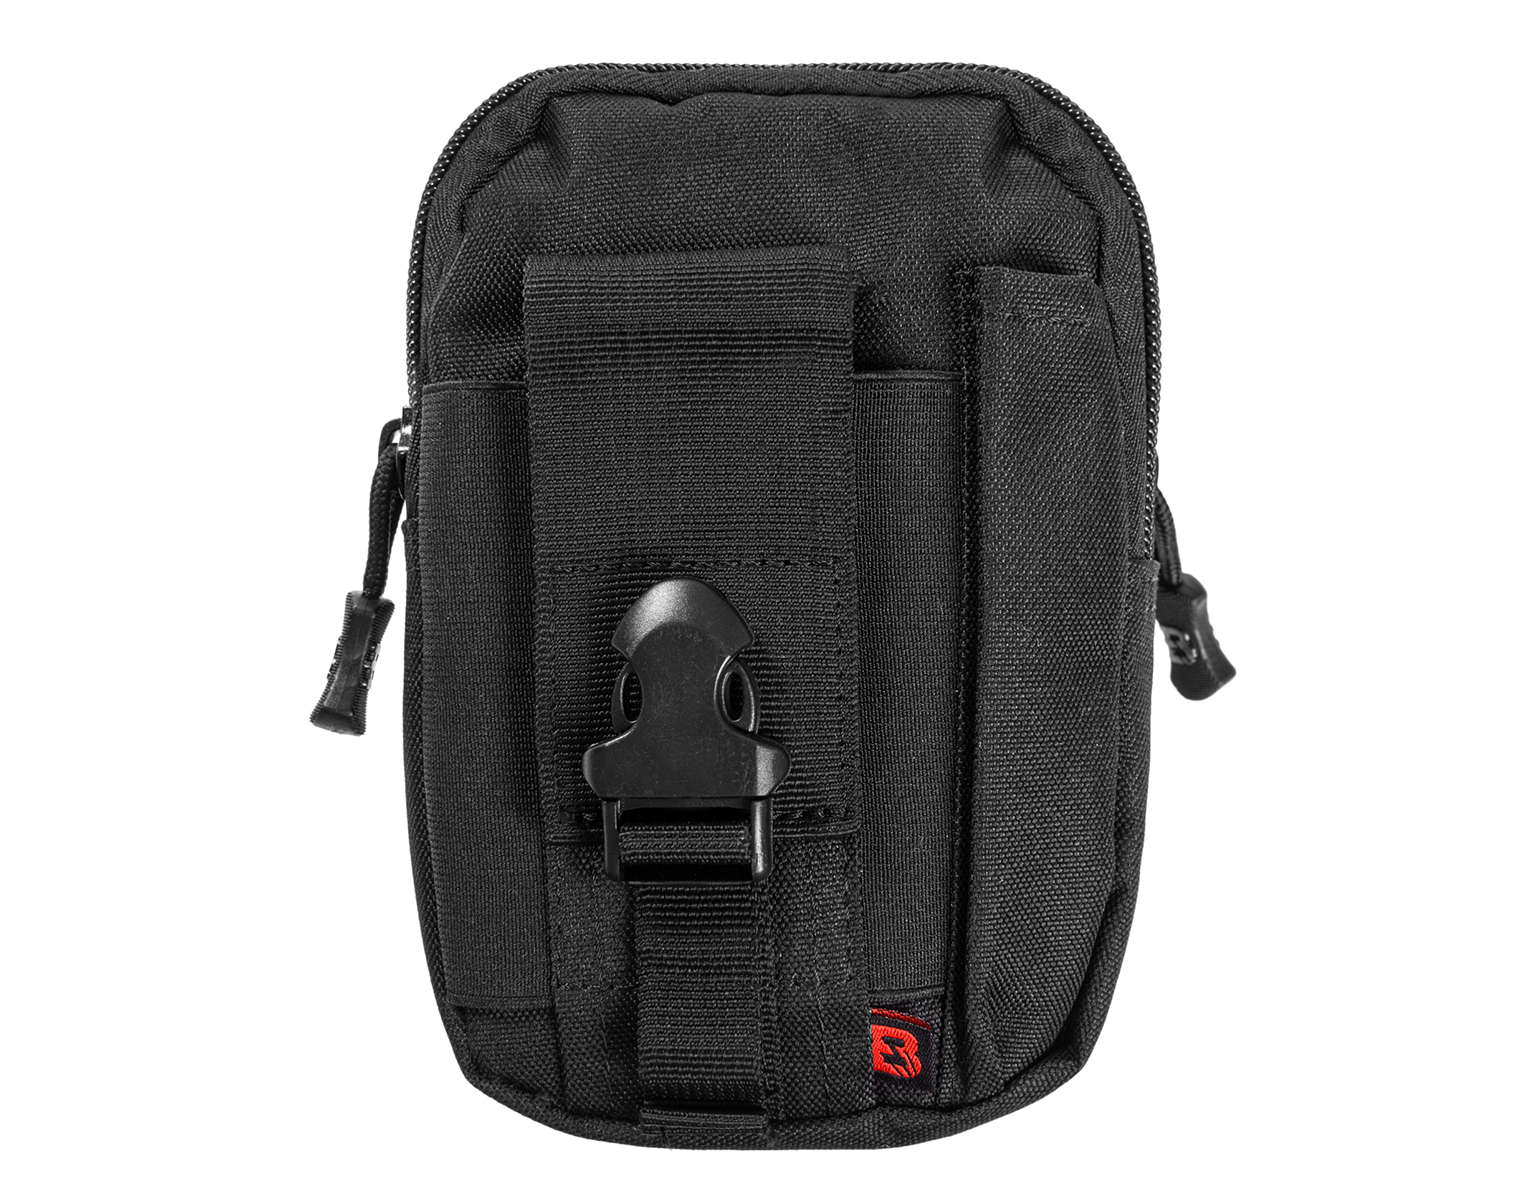 Panel administracyjny Badger Outdoor Tactical Admin Pouch - Czarny